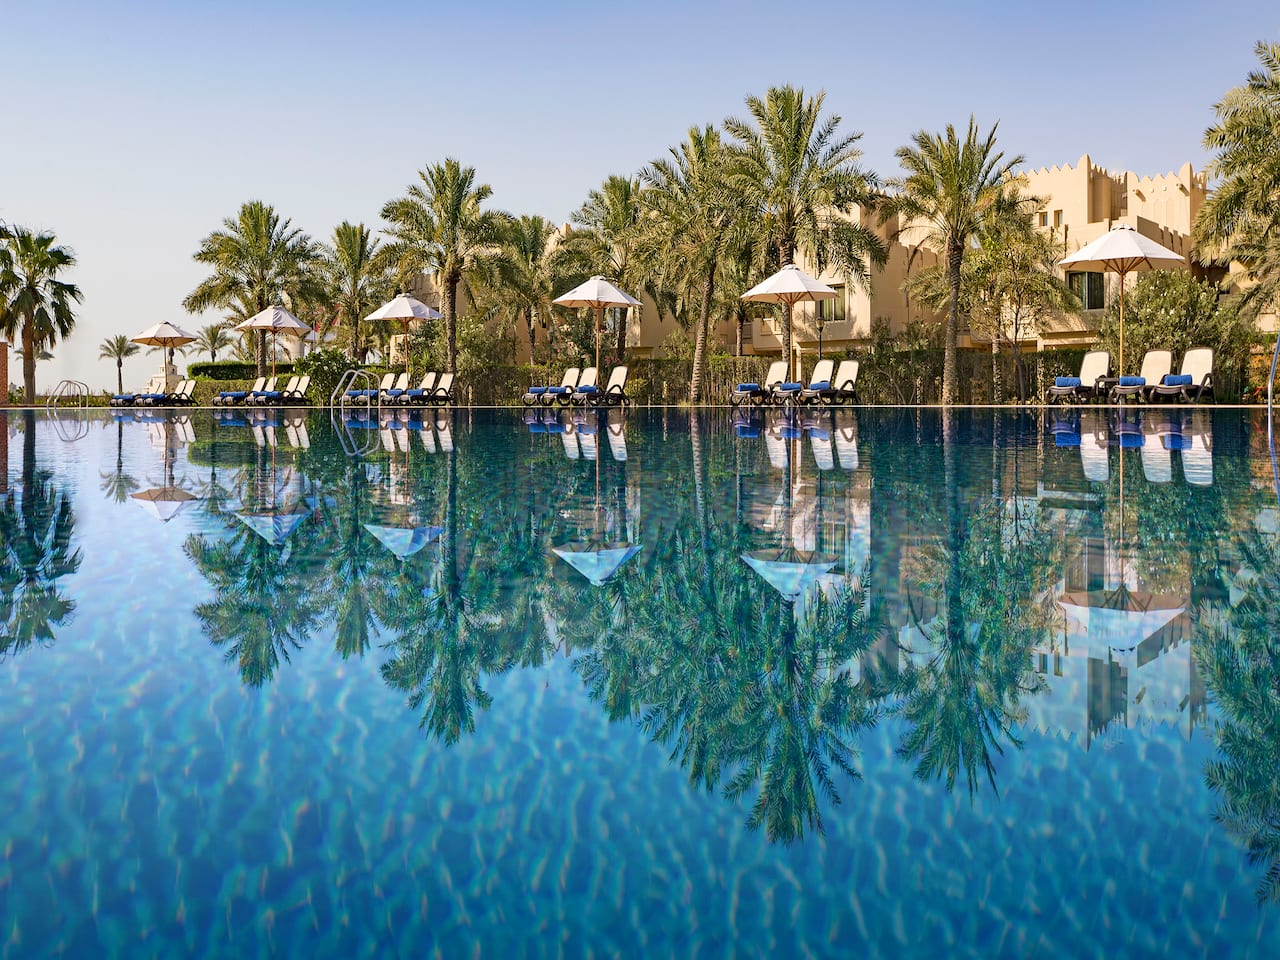 Swimming Pool at Grand Hyatt Doha Hotal & Villas